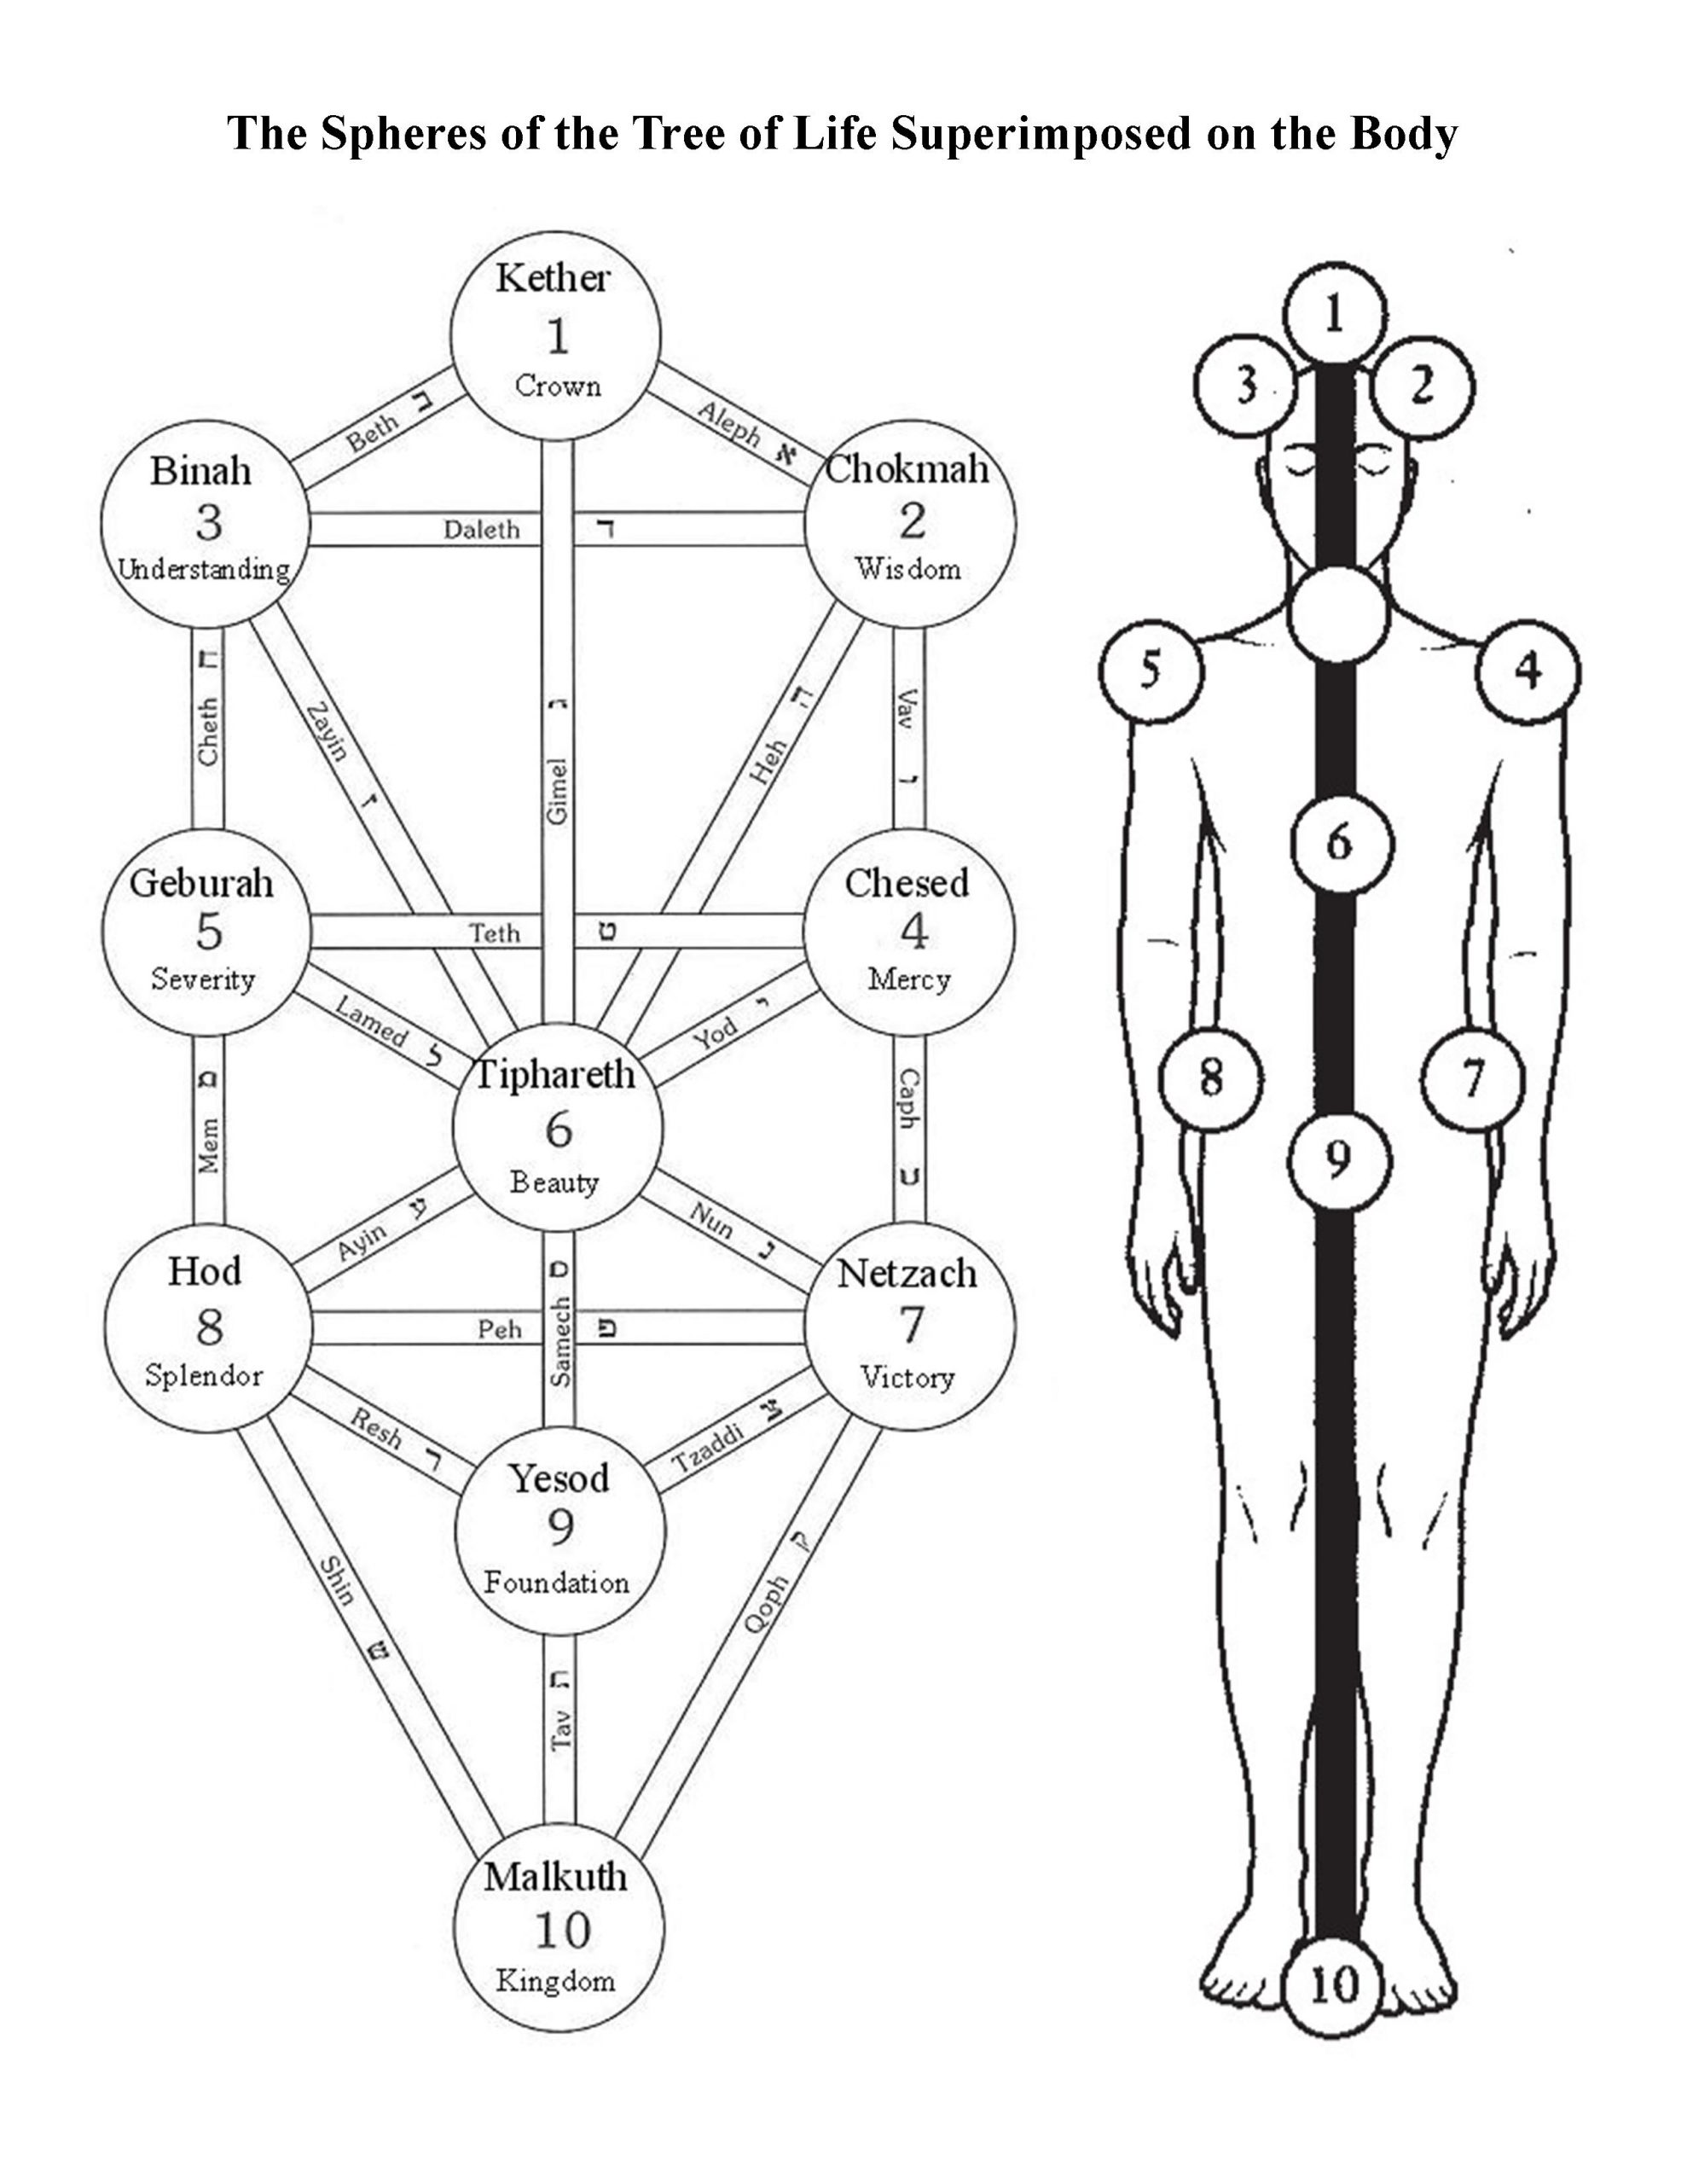 The Middle Pillar Exercise is based on the energy centers of the body that correspond to the spheres of the central pillar of the qabalistic Tree of Life.